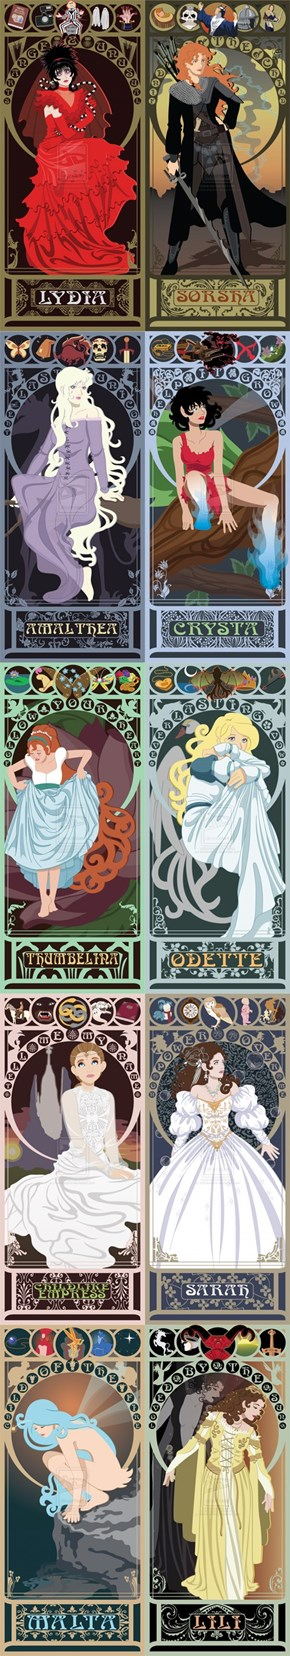 Art Nouveau Heroines From the '80s and '90s